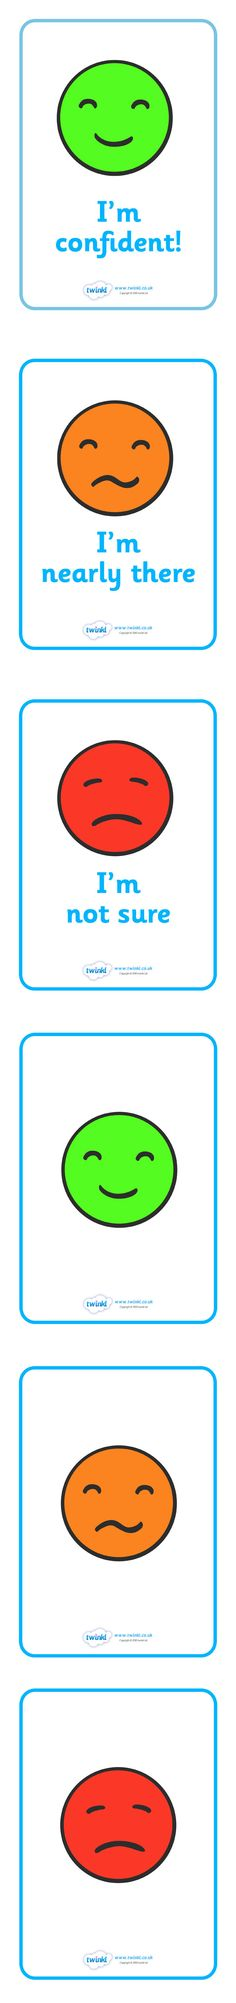 Twinkl Resources >> Emotion Communication Display Posters  >> Thousands of printable primary teaching resources for EYFS, KS1, KS2 and beyond! communication,emotions, communication cards, traffic lights, foundation, autism, SEN,